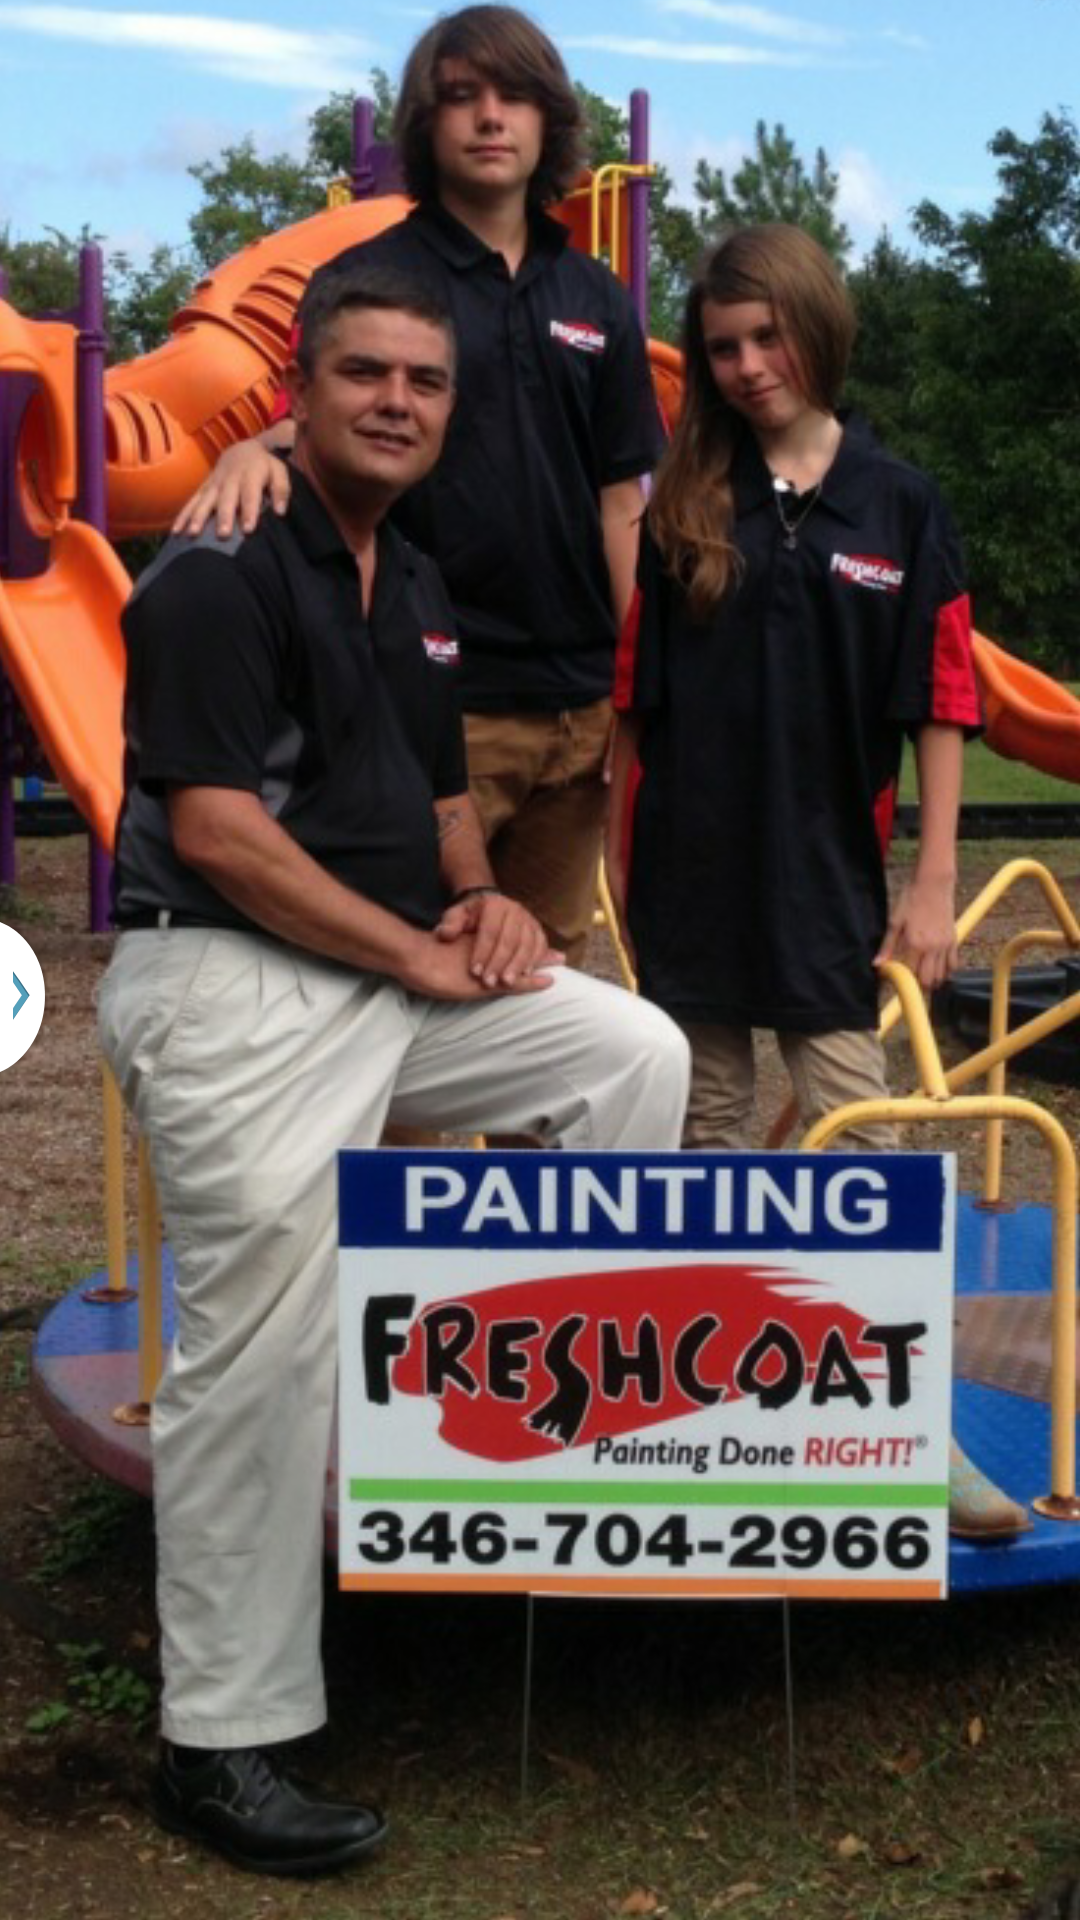 Humar gonzalez opens fresh coat painters franchise in pearland for Gonzalez painting pearland